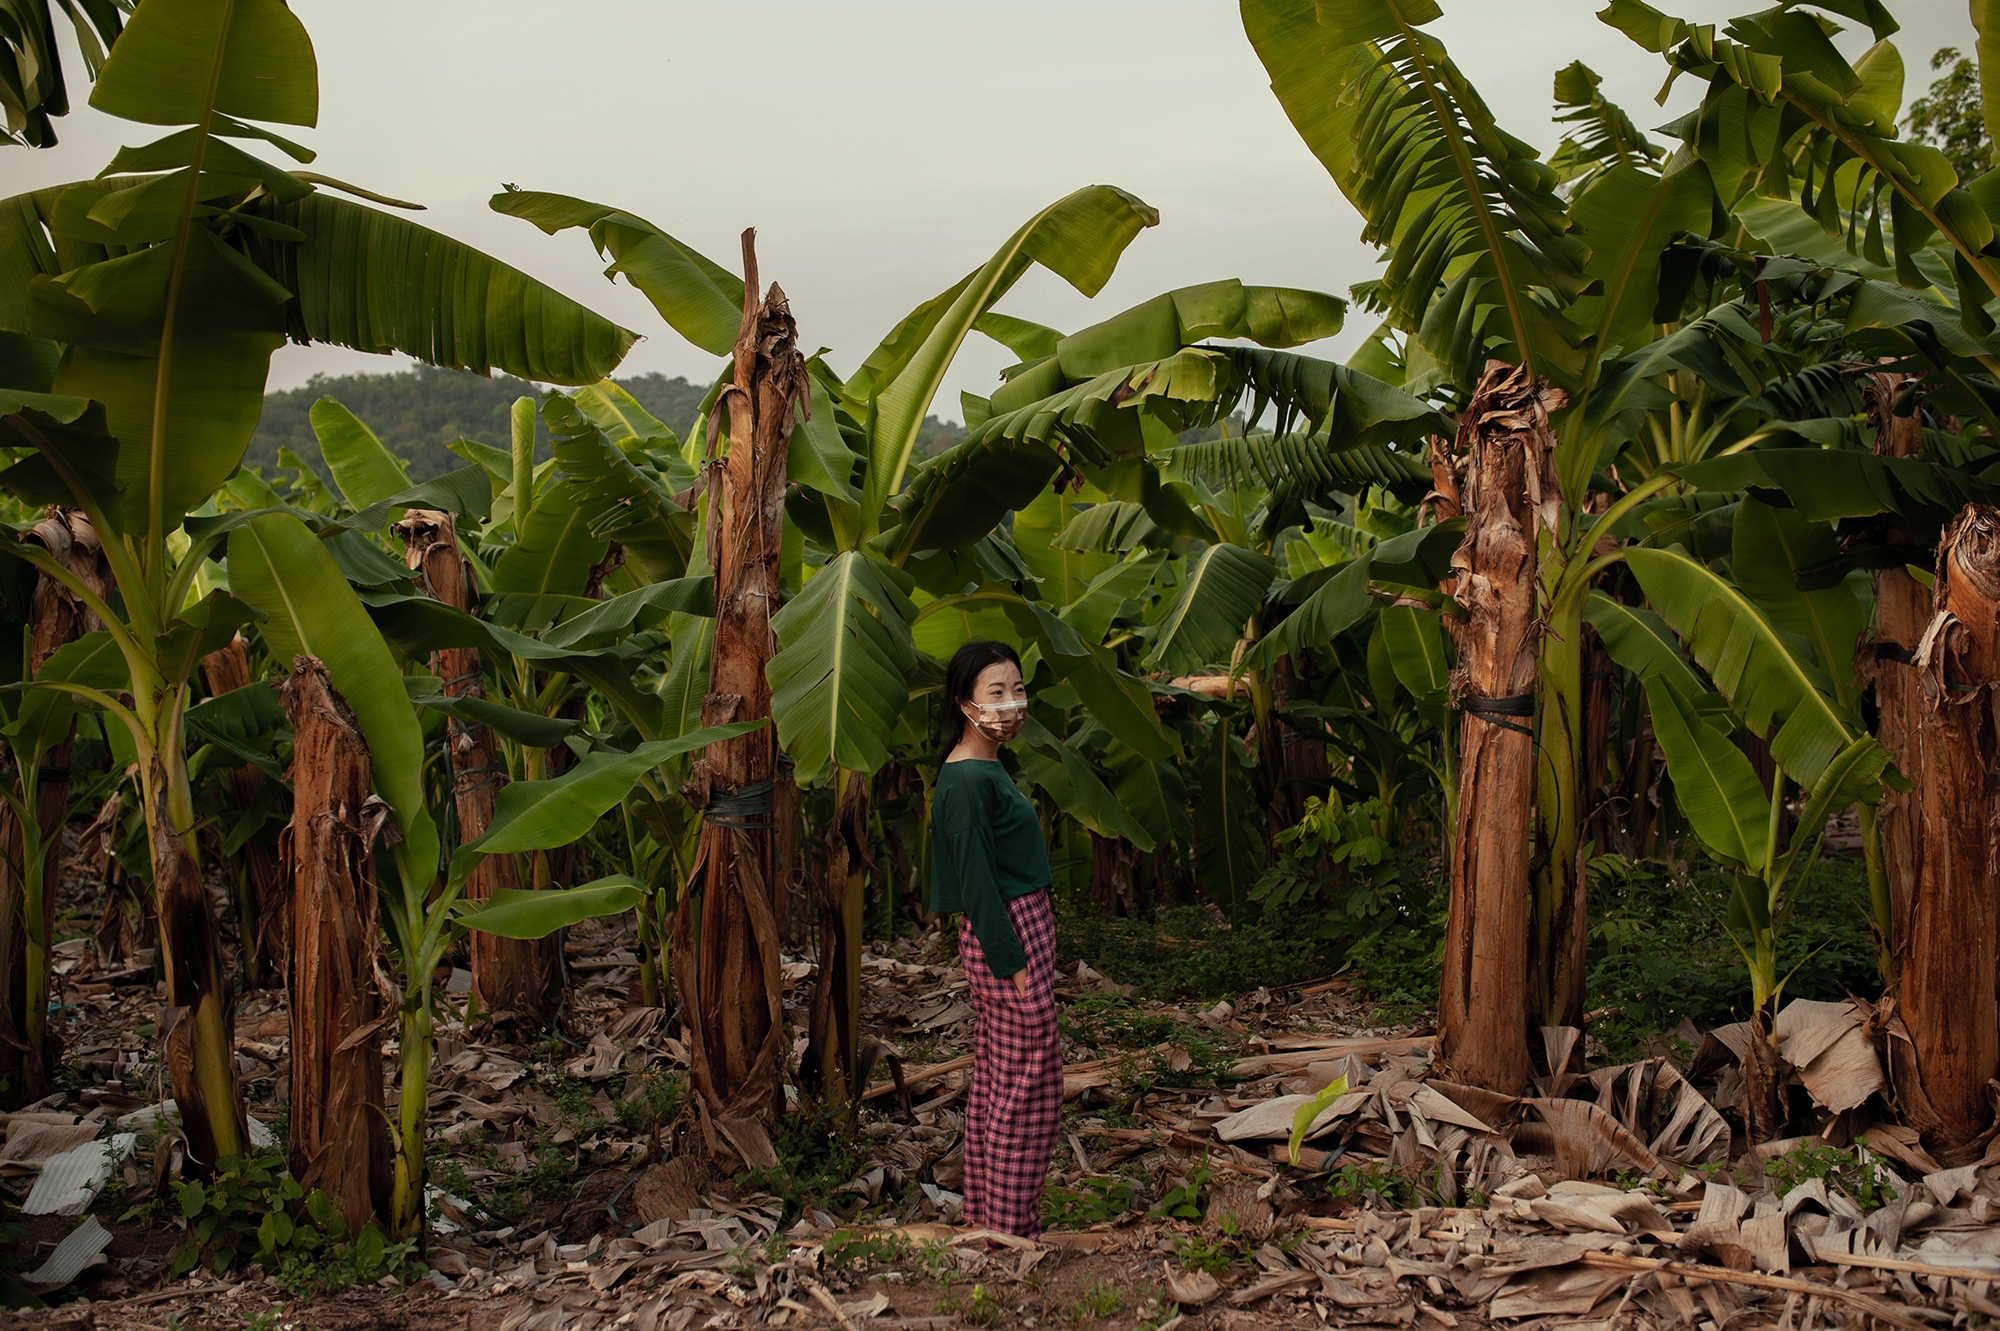 17-year-old Pie was a grade 10 student when she decided to leave school to look for work in the banana plantation (Image: Visarut Sankham/China Dialogue)